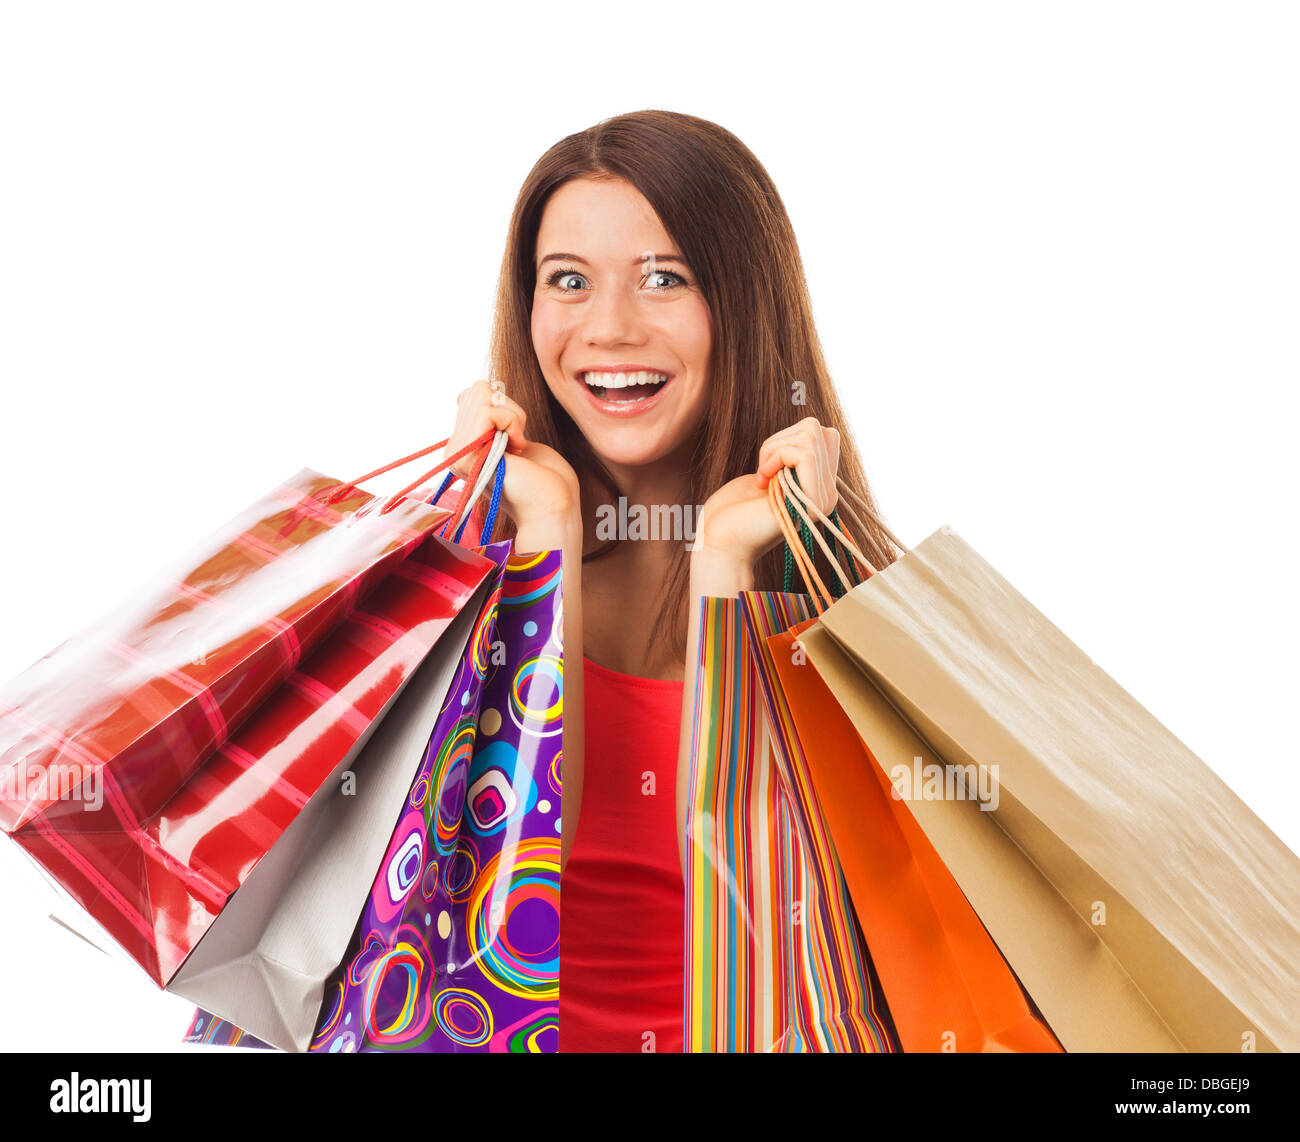 Portrait of a young woman holding shopping bags and looking very happy, isolated on white - Stock Image